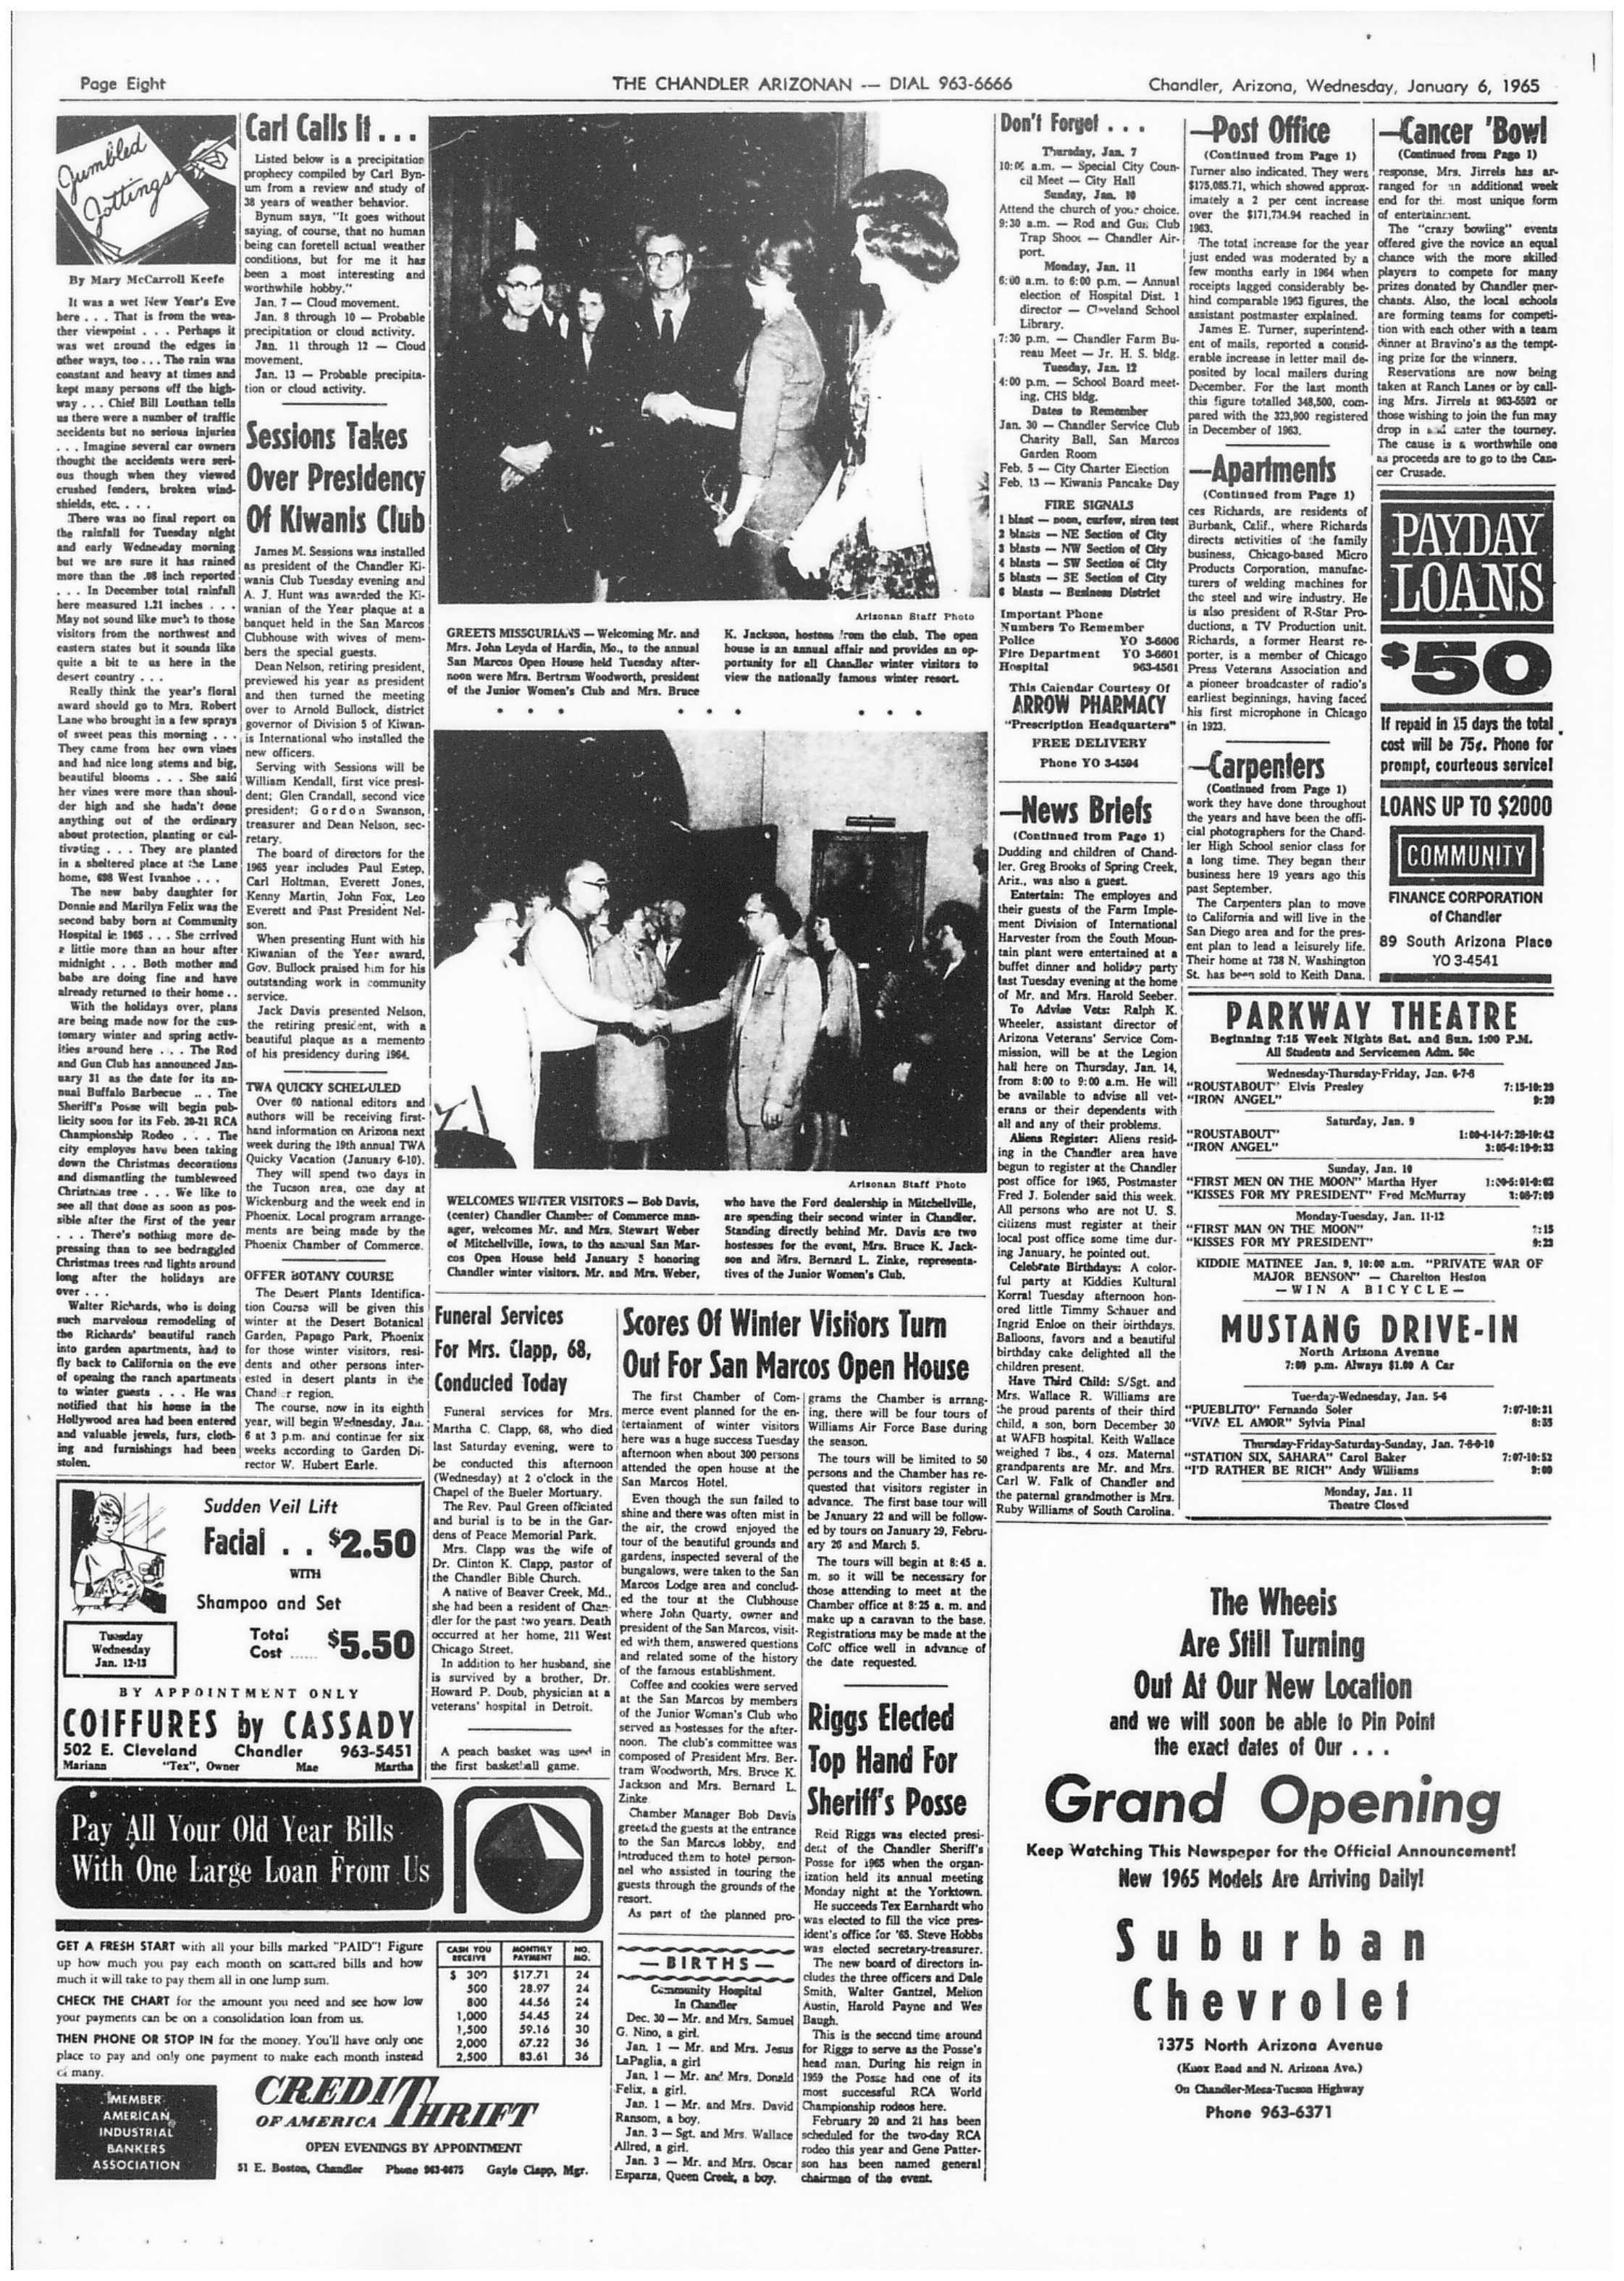 01-06-1965 - Page 8 .jpg